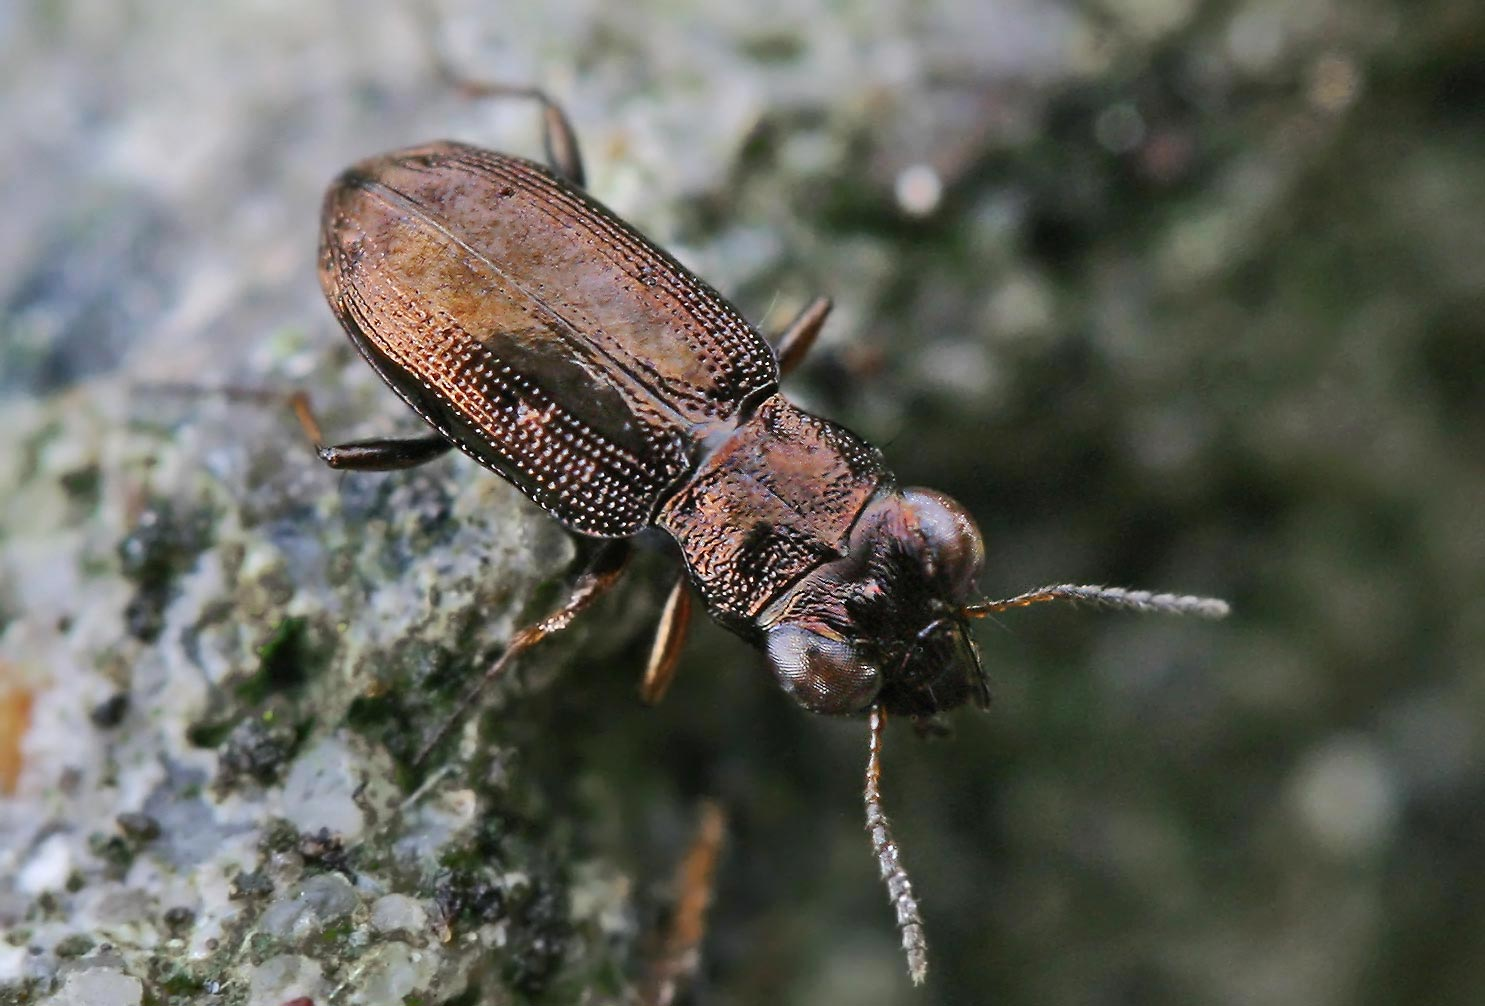 Notiophilus sp.